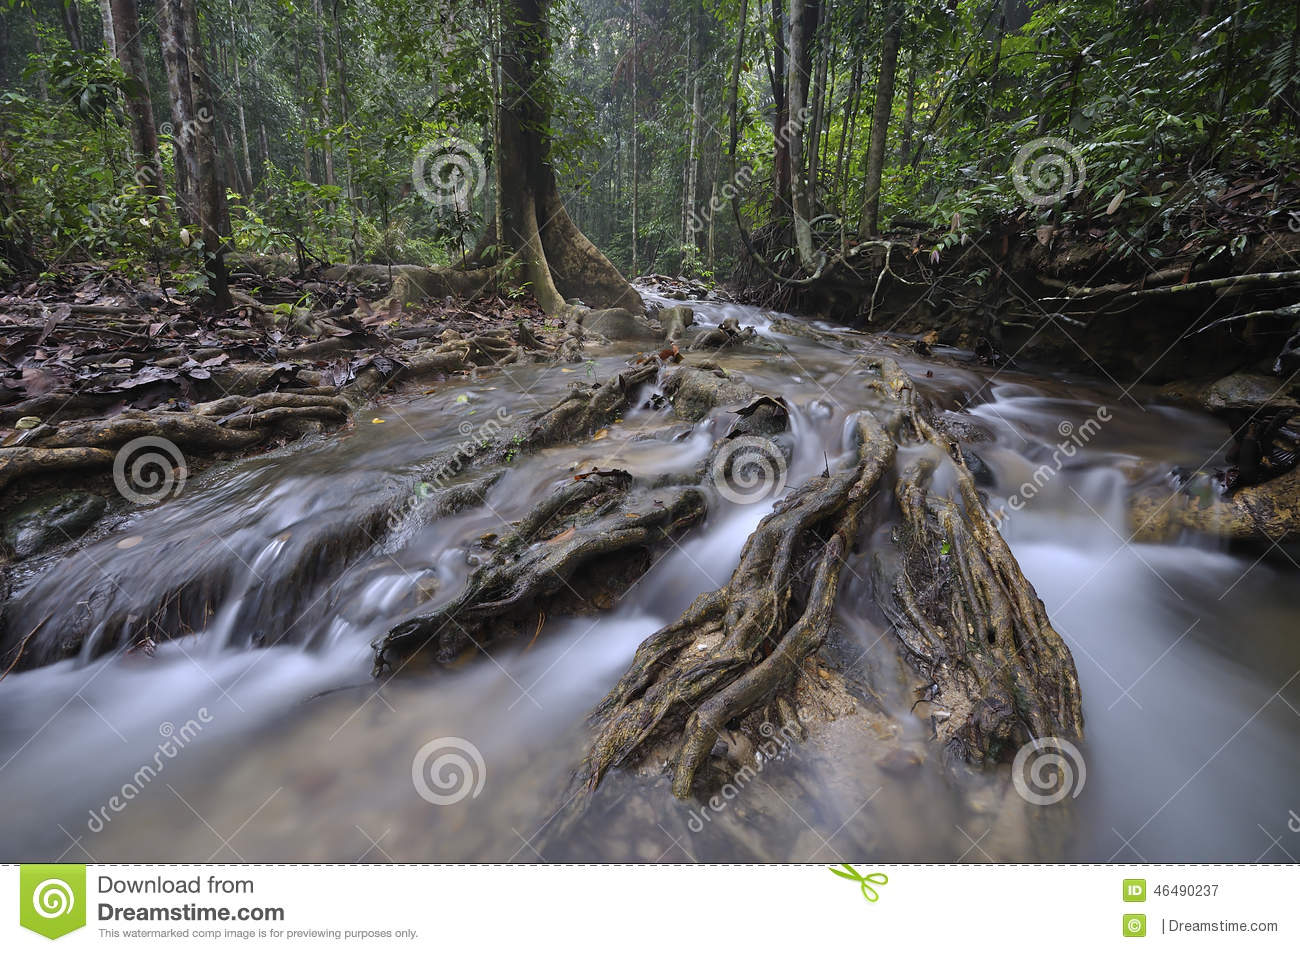 Home · archive · koalas · australian boodiversity · pangolins · contraband · jarrah forest, bauxite mining · jambi, indonesia · custom page · custom page. The Equatorial Forest With Trees And Bushes Stock Image Image Of Peaceful Background 46490237